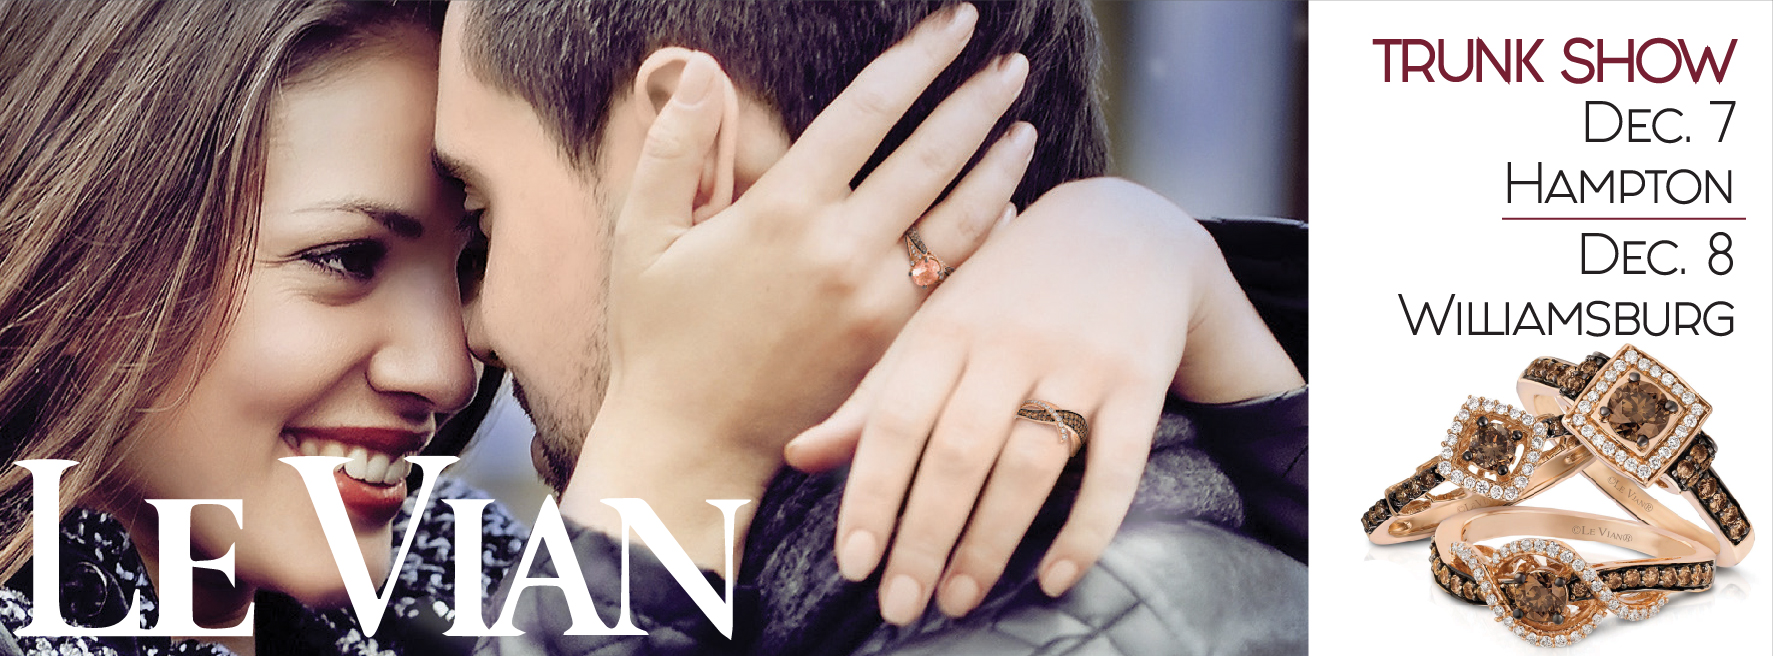 LeVian trunk show fb cover 01